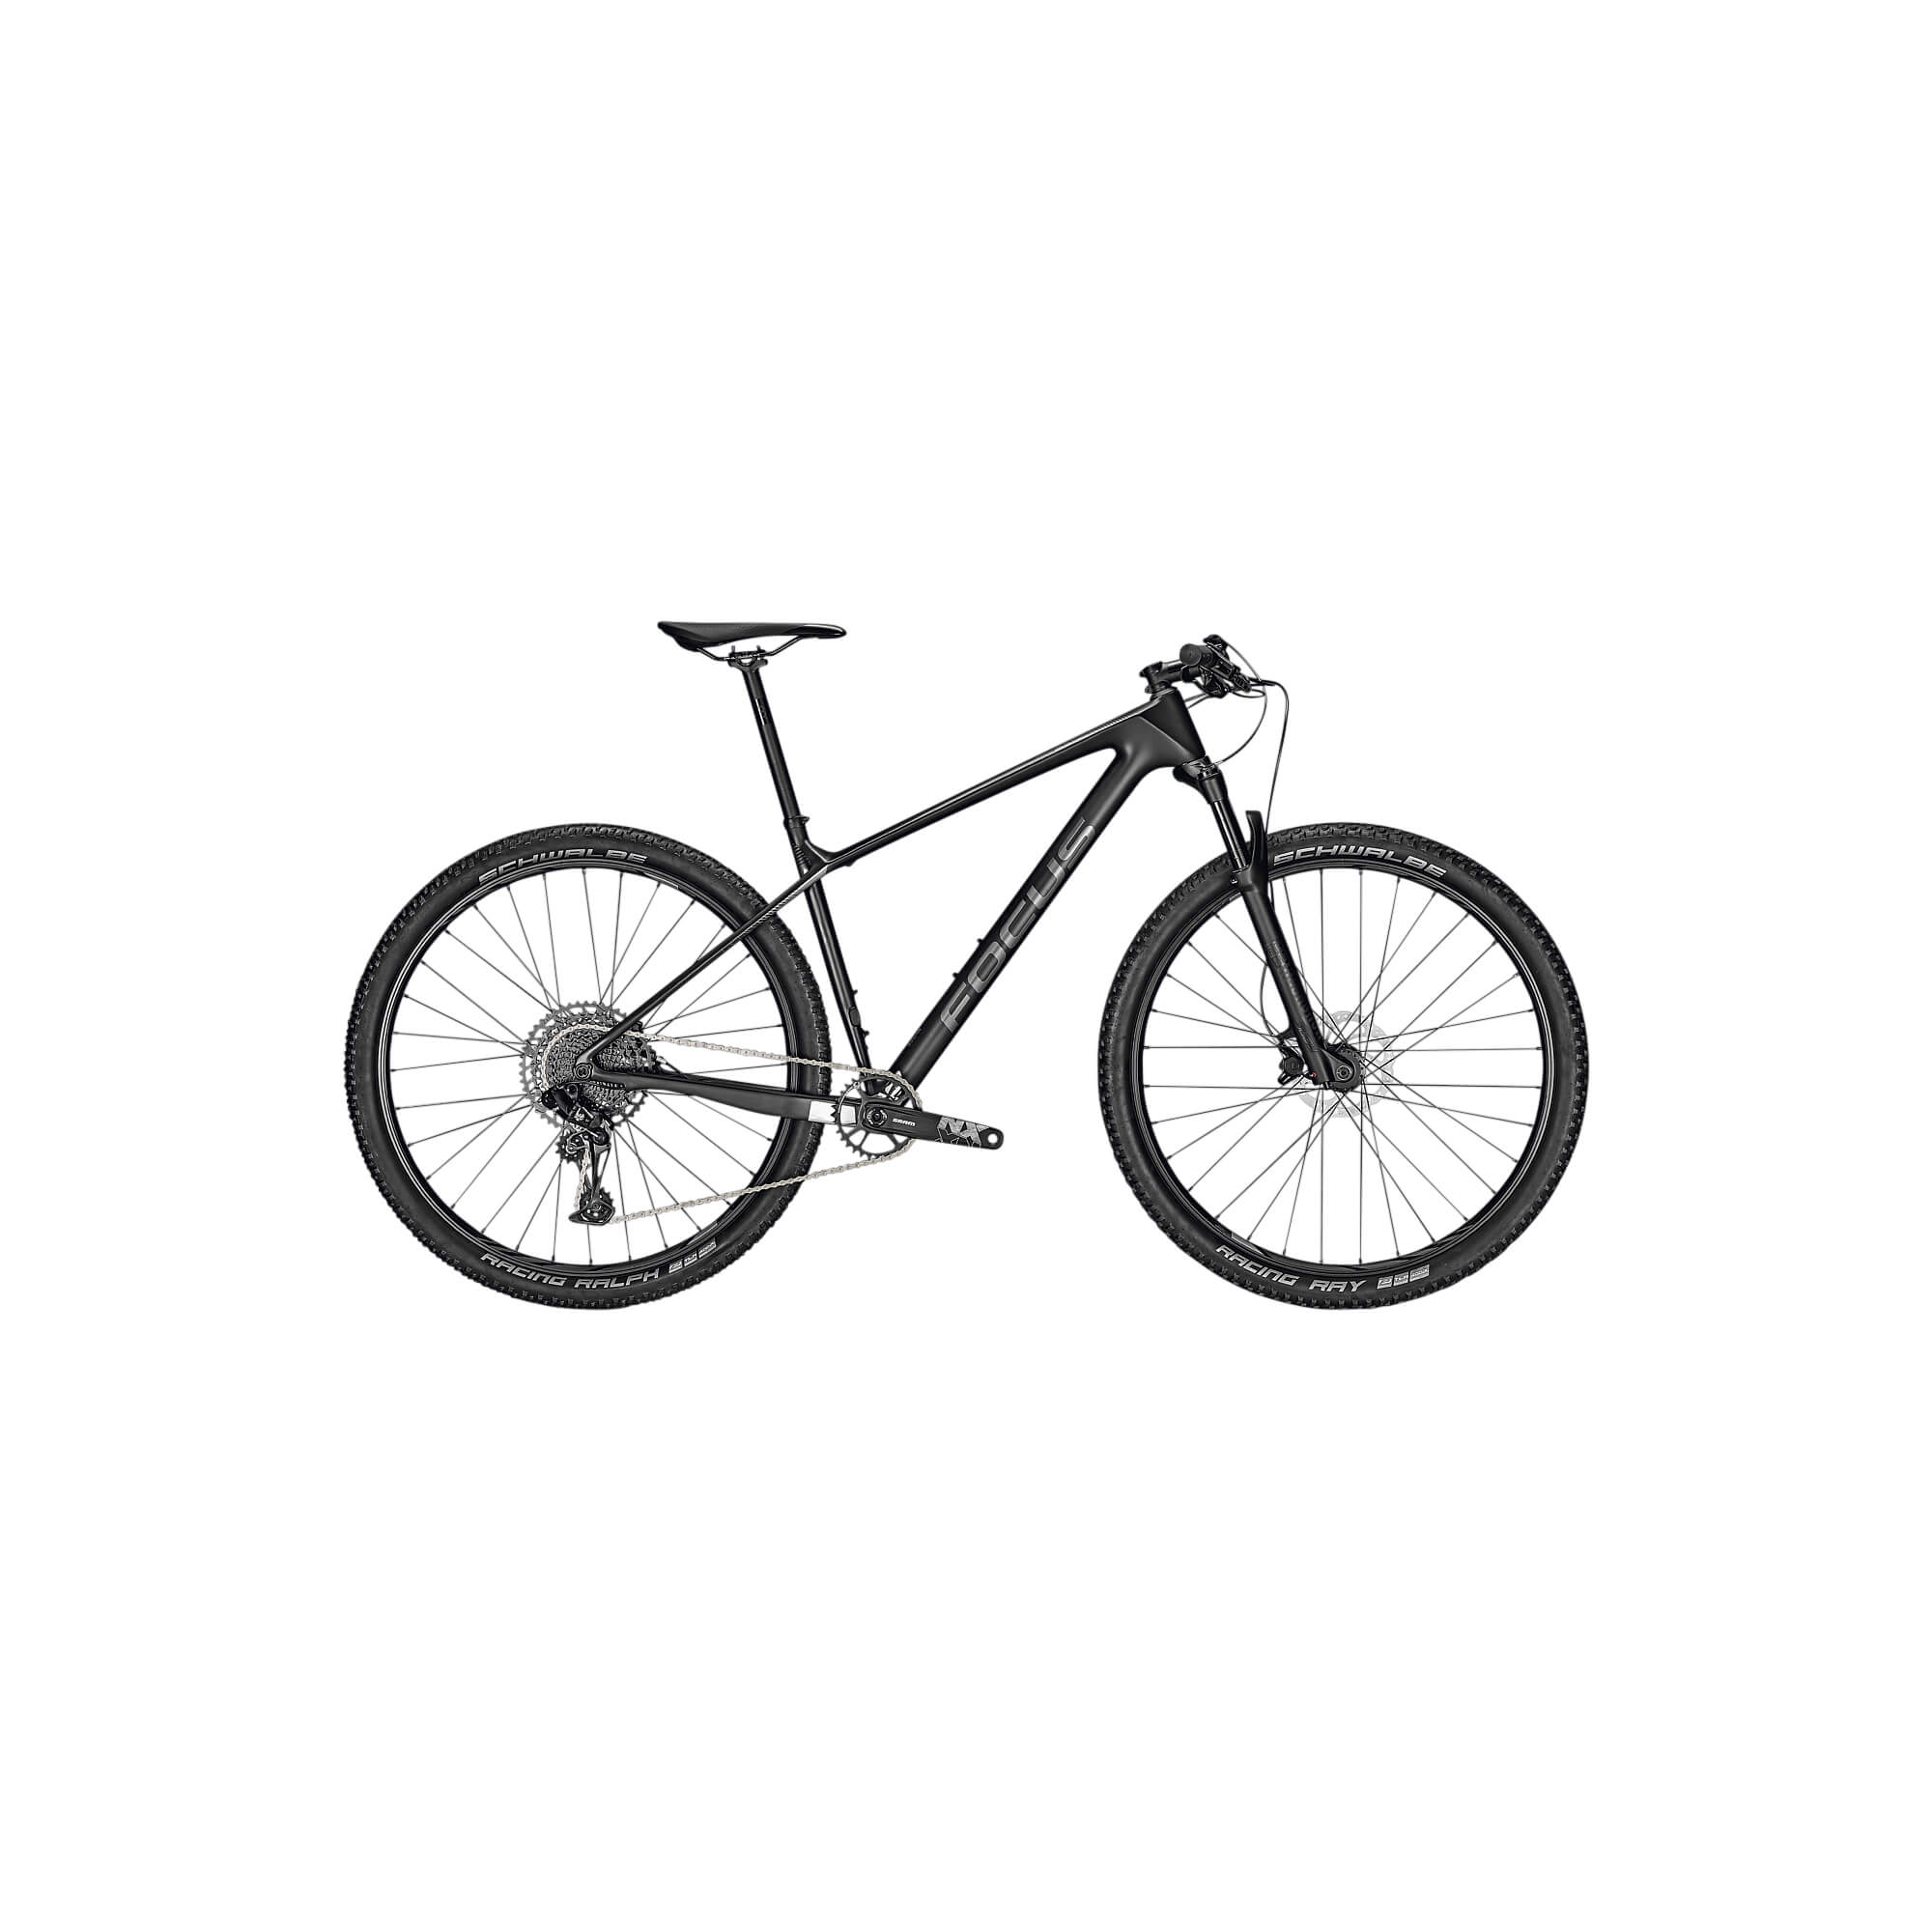 Bicicleta MTB Raven 8.6 imagine